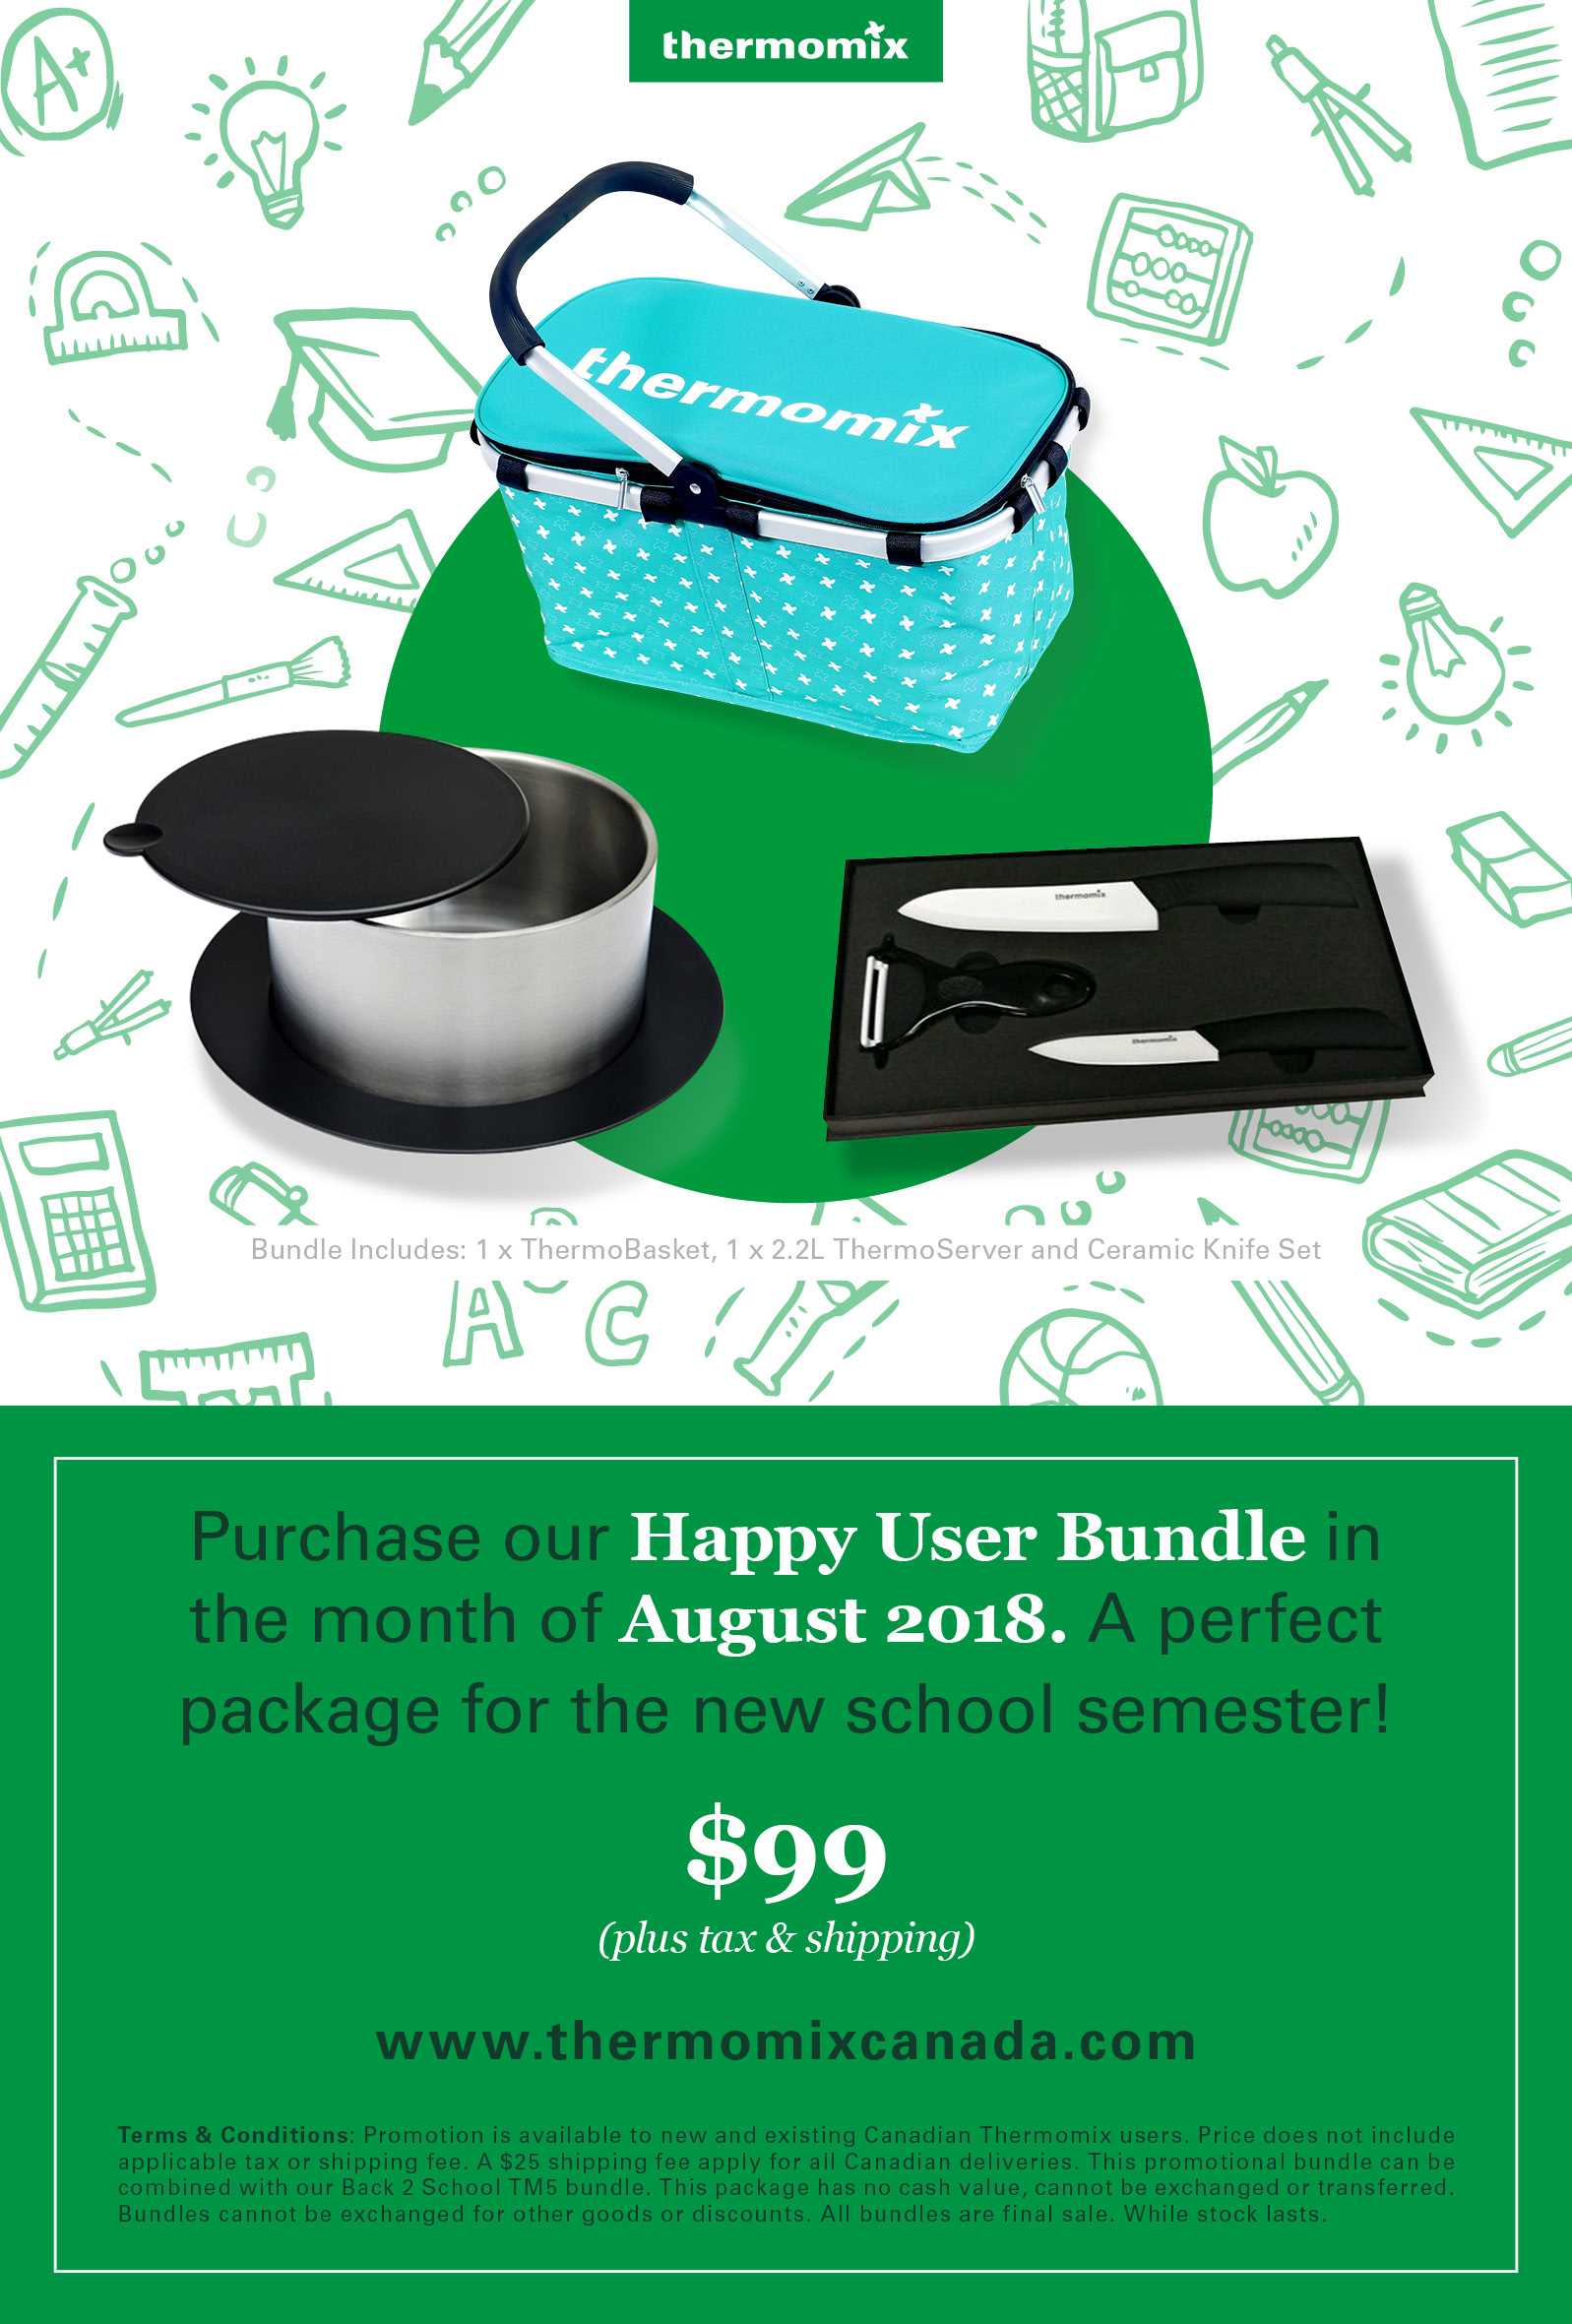 Thermomix August 2018: Price Increase to 1899CA September 2018